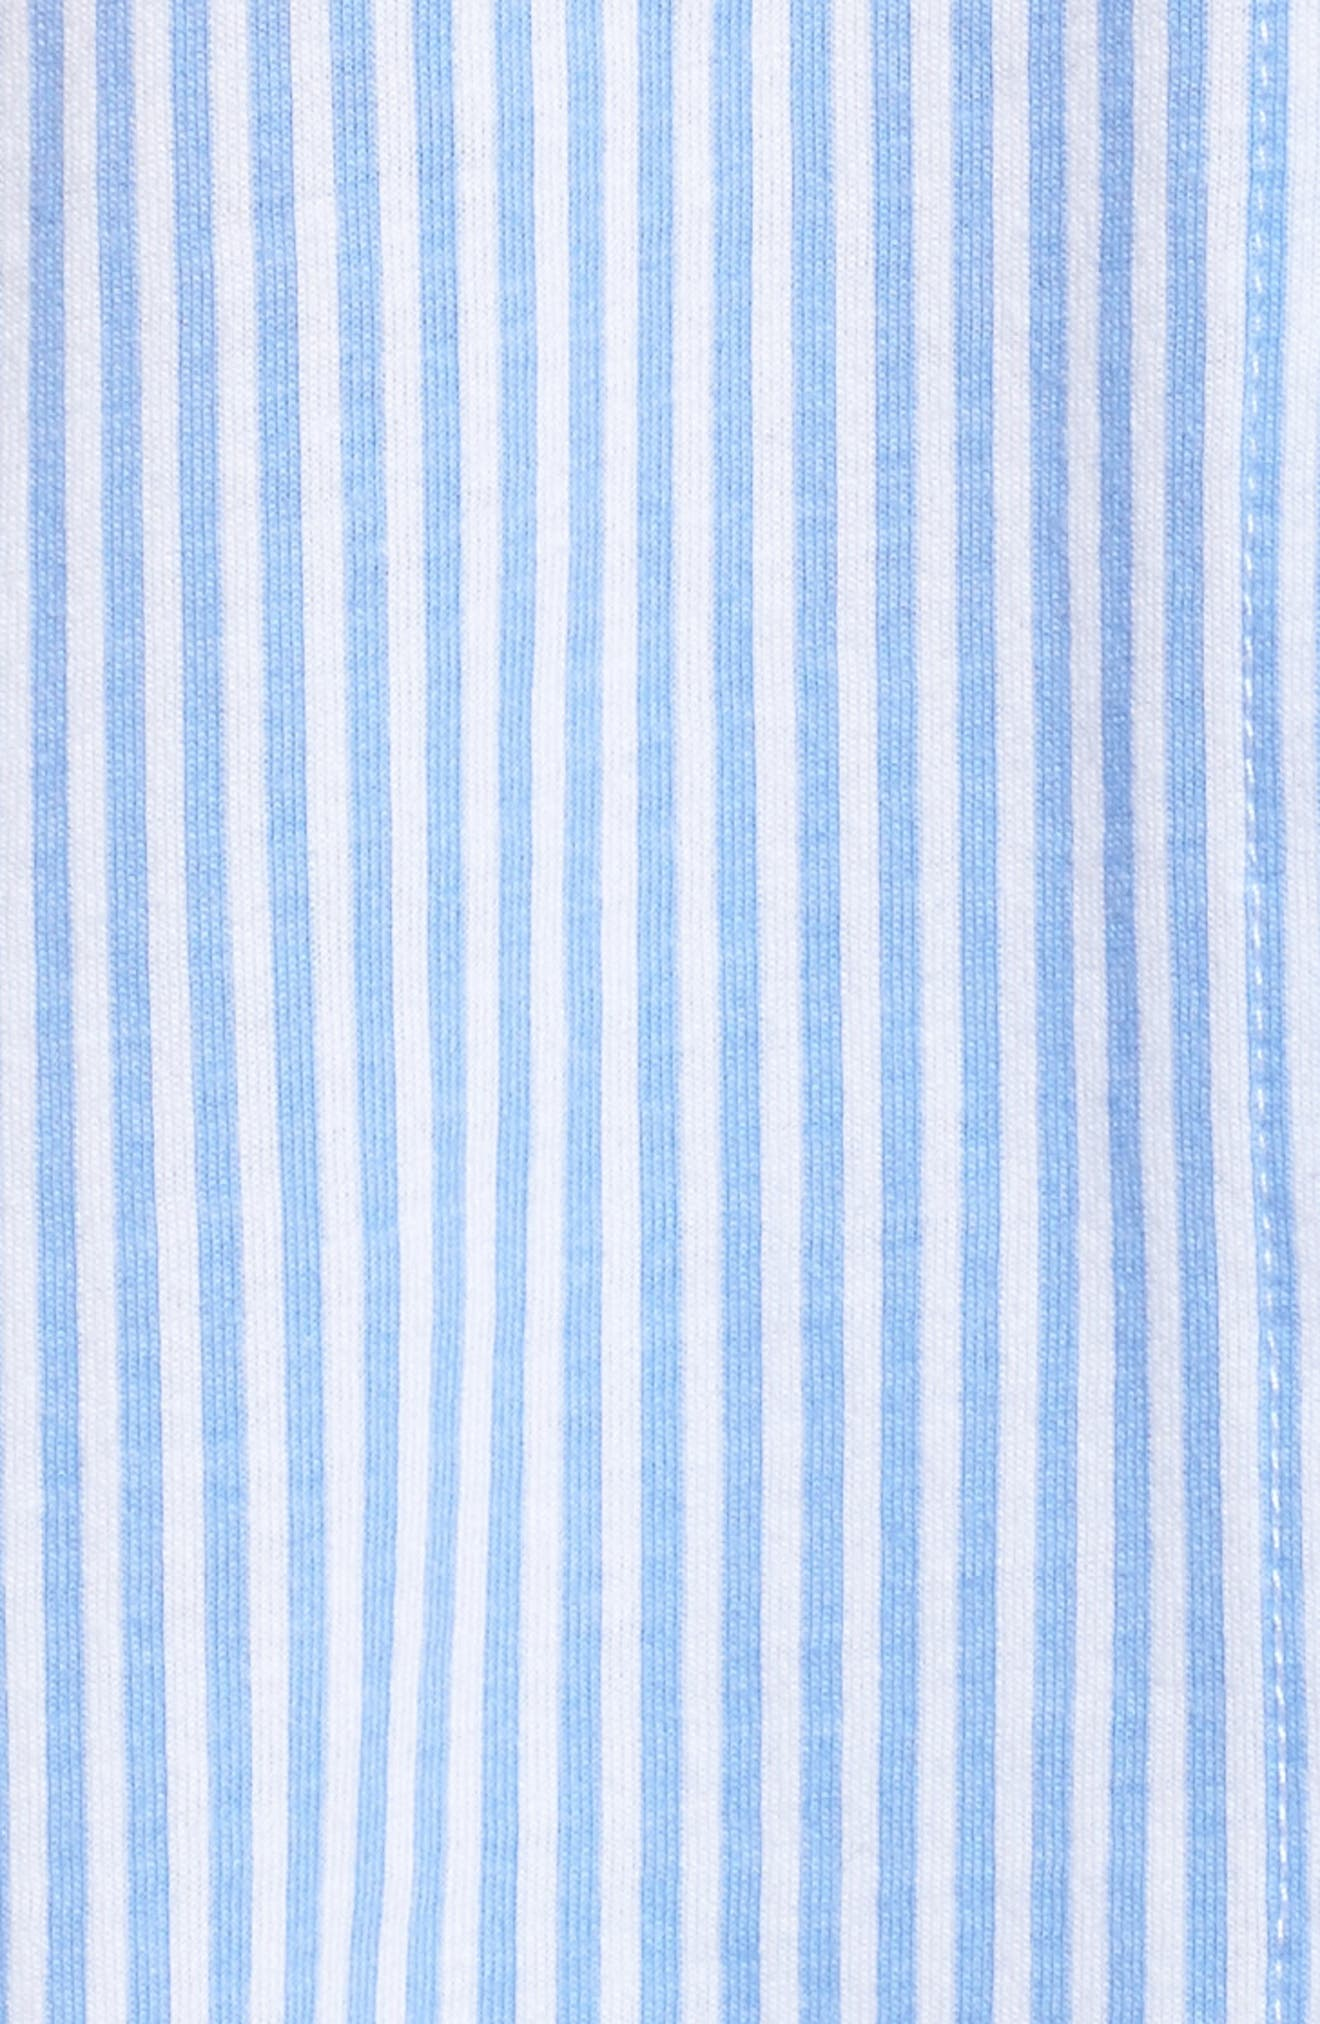 Bermuda Pajamas,                             Alternate thumbnail 5, color,                             Feather Blue Stripe